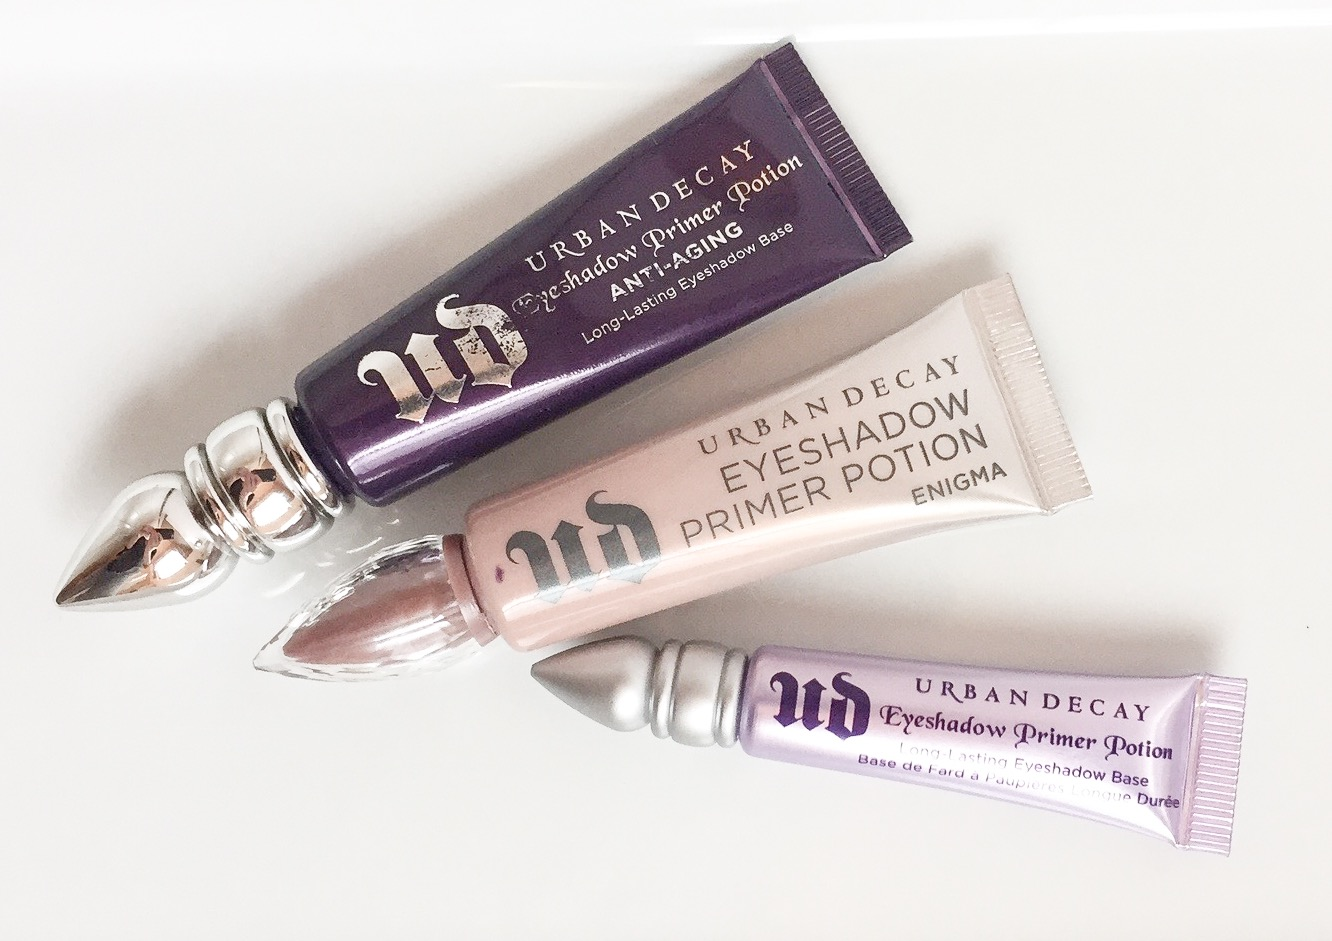 Urban decay anti-aging eyeshadow primer potion review